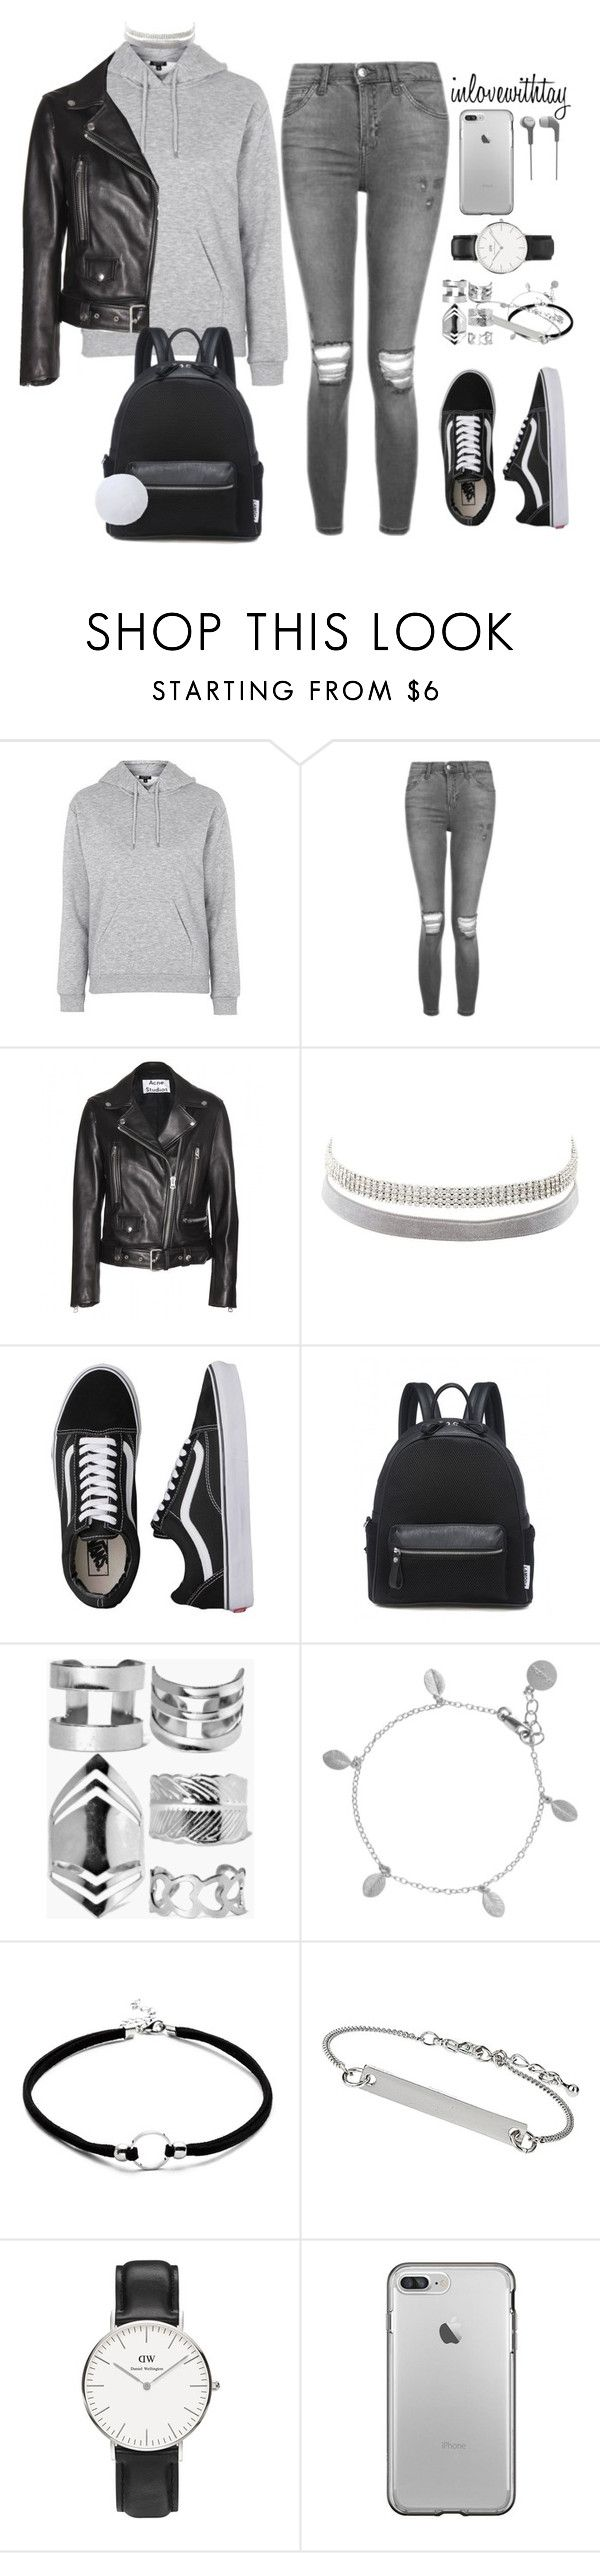 """""""18❤"""" by inlovewithtay on Polyvore featuring mode, Topshop, Acne Studios, Charlotte Russe, Vans, Boohoo, Chupi et Daniel Wellington"""